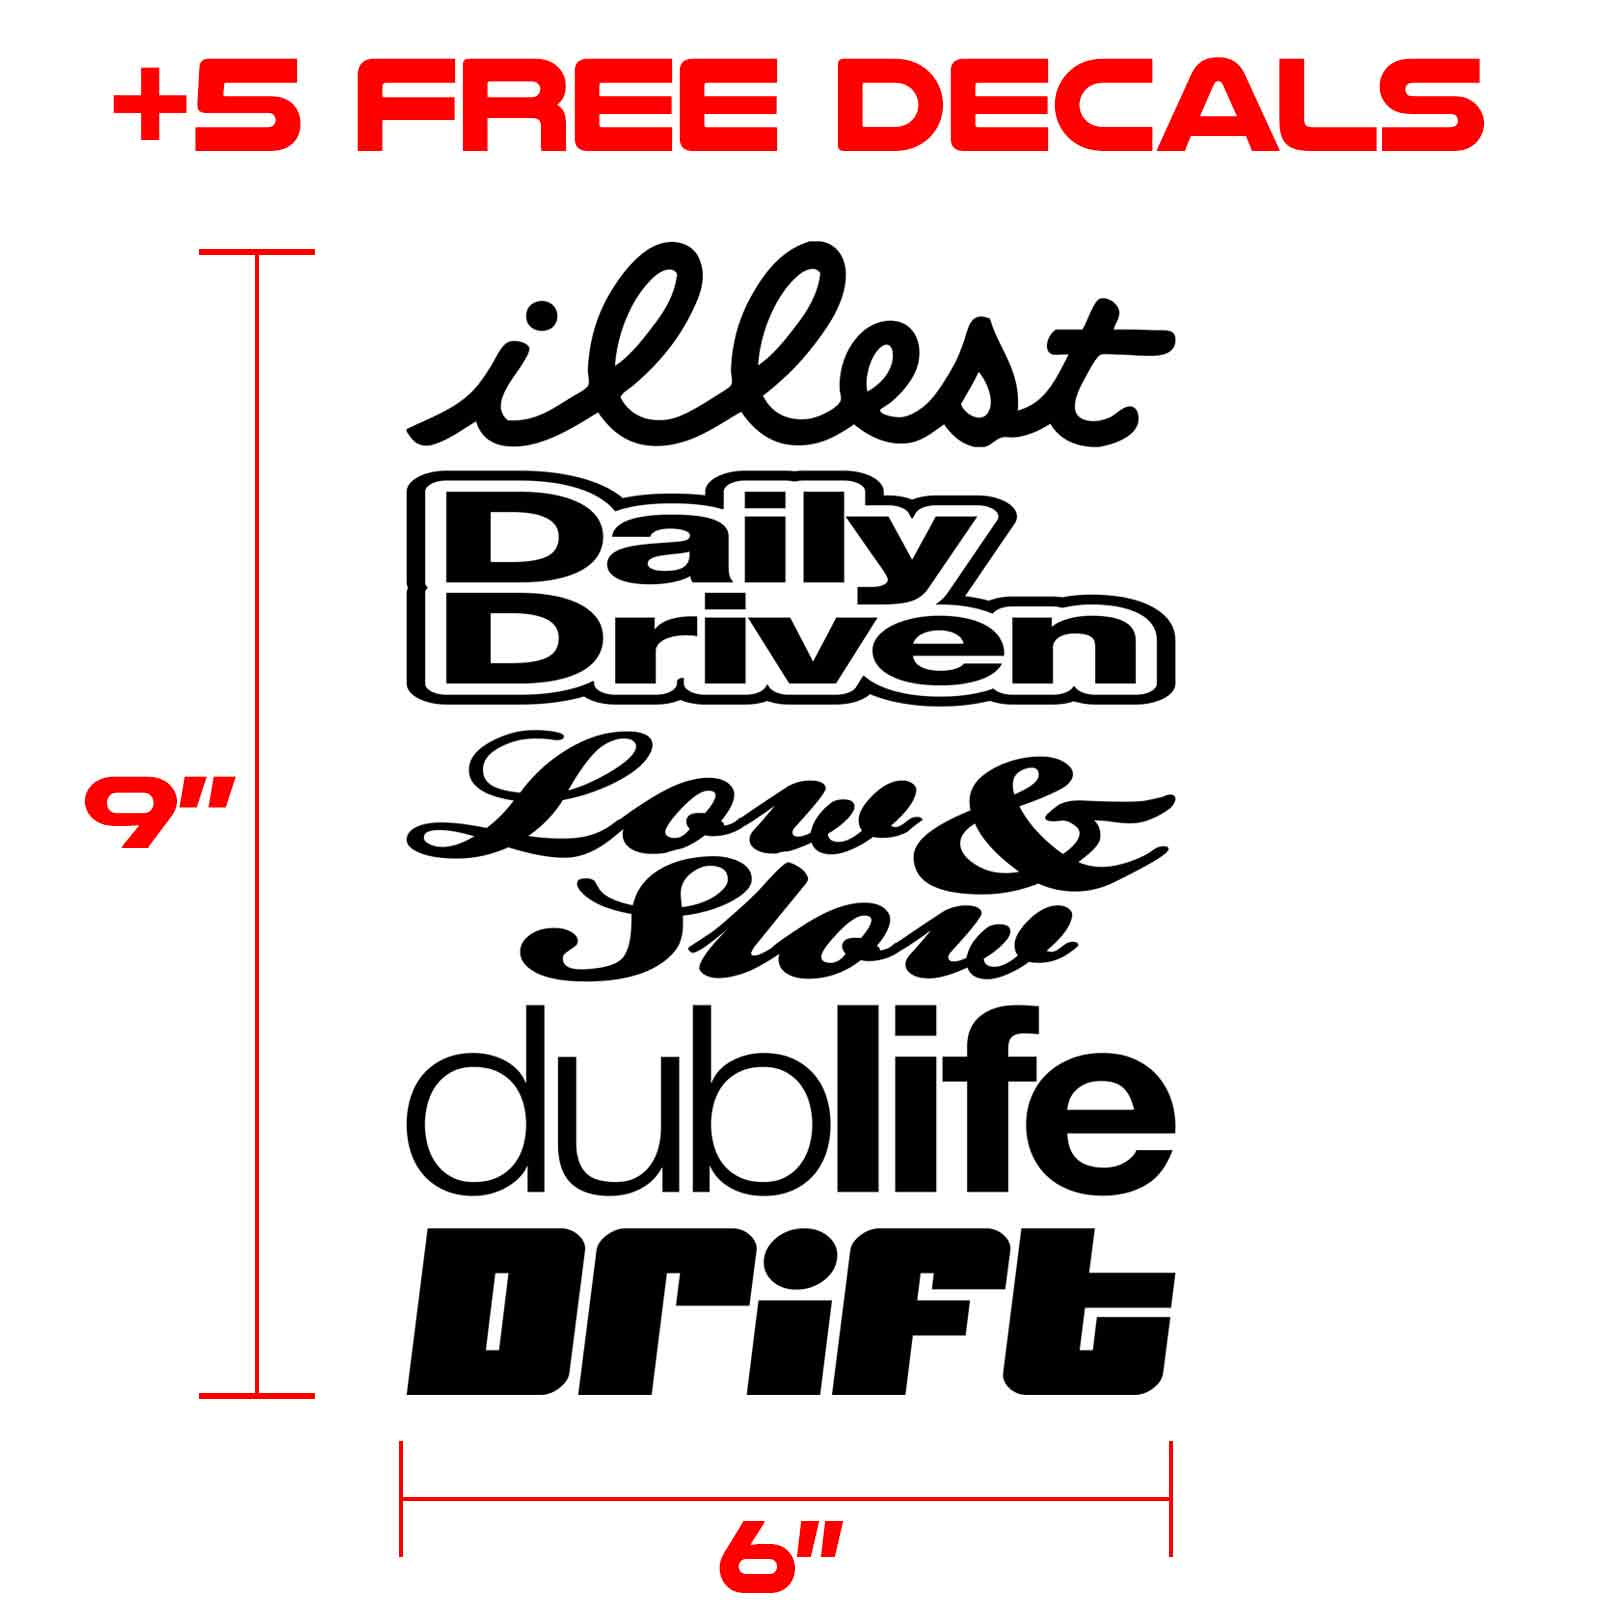 decals kit for graphics 002 black